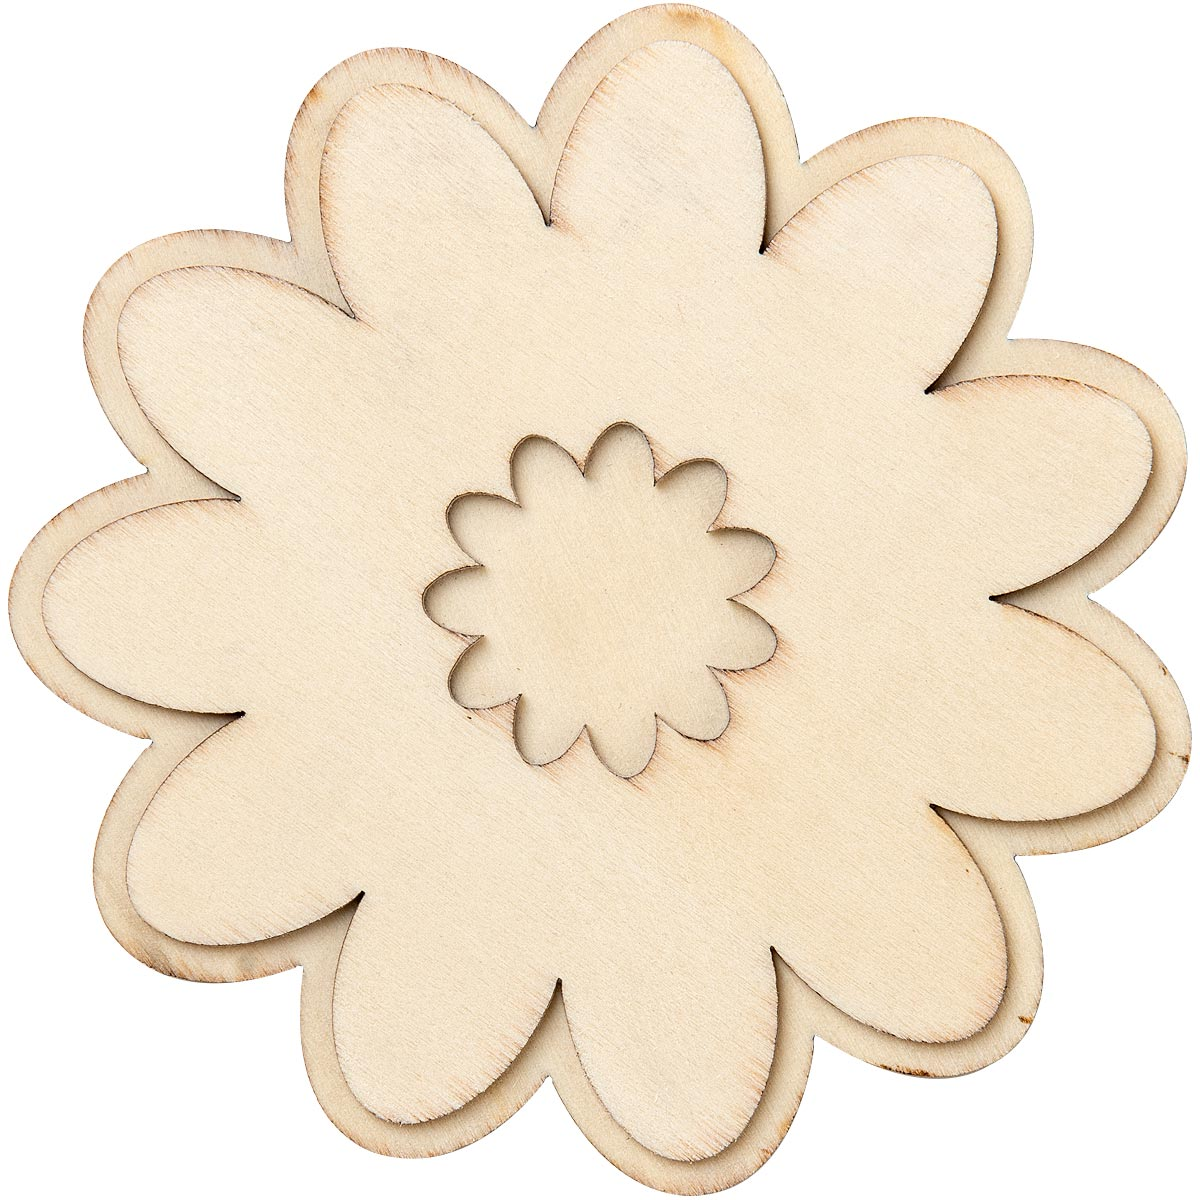 Plaid ® Wood Surfaces - Unpainted Layered Shapes - Fun Flower - 44999